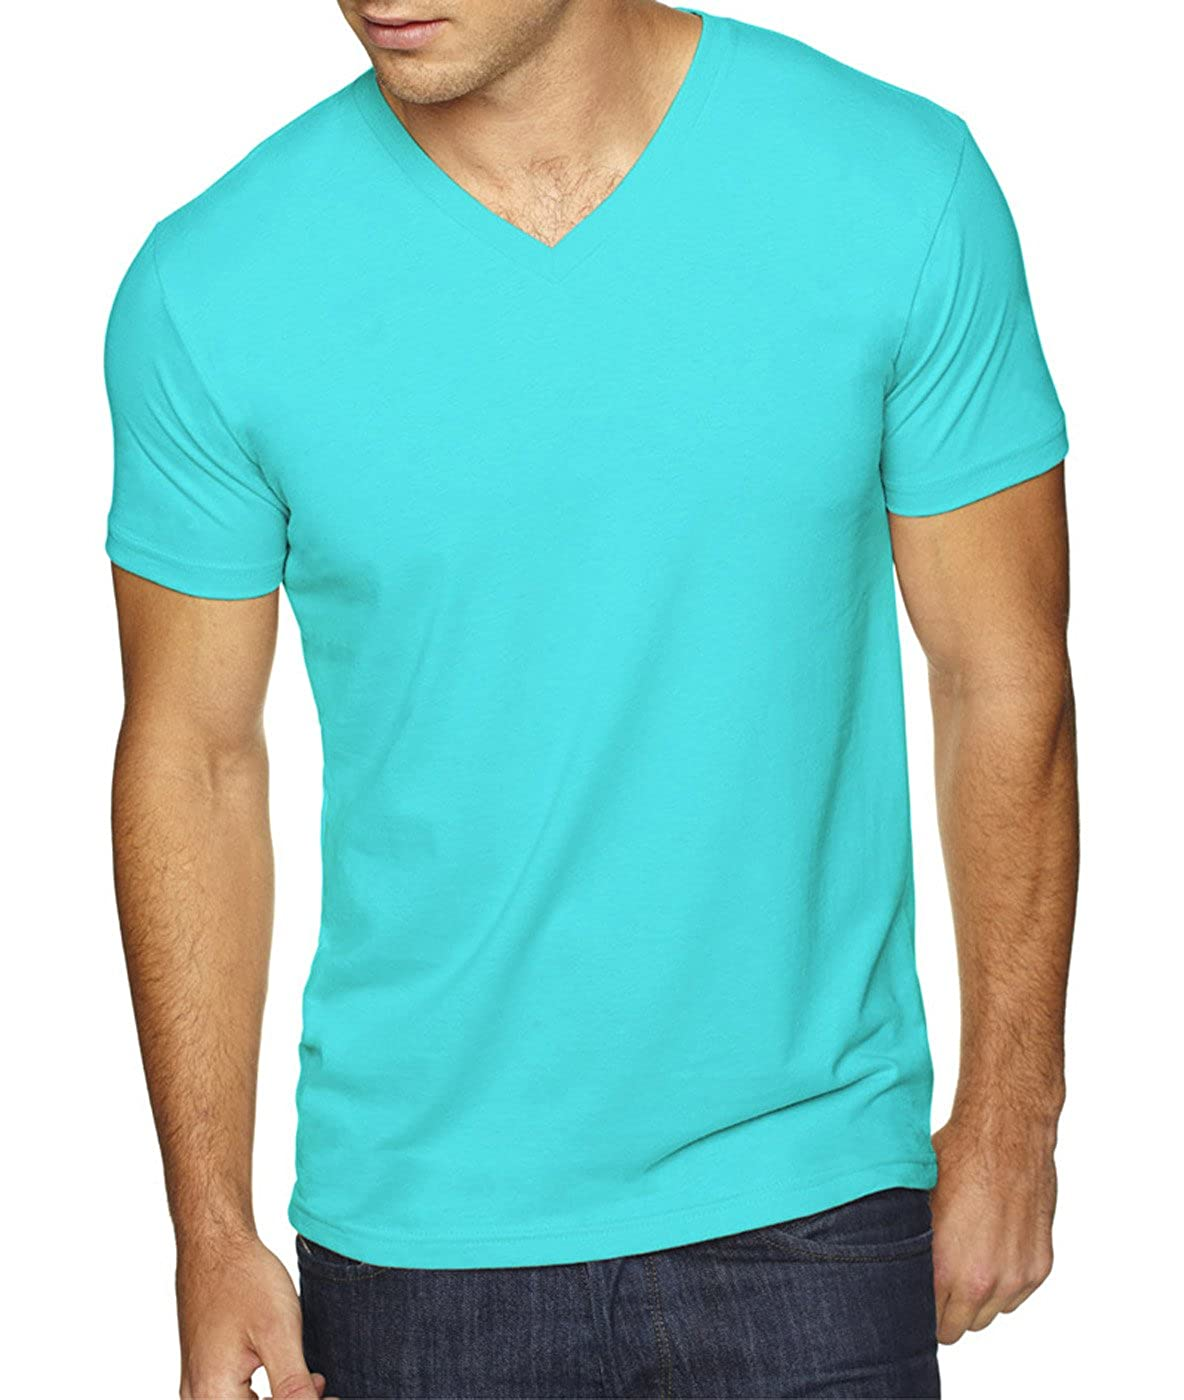 - Medium Military Green Tahiti Blue Next Level Apparel 6440 Mens Premium Fitted Sueded V-Neck Tee -2 Pack 2 Shirts